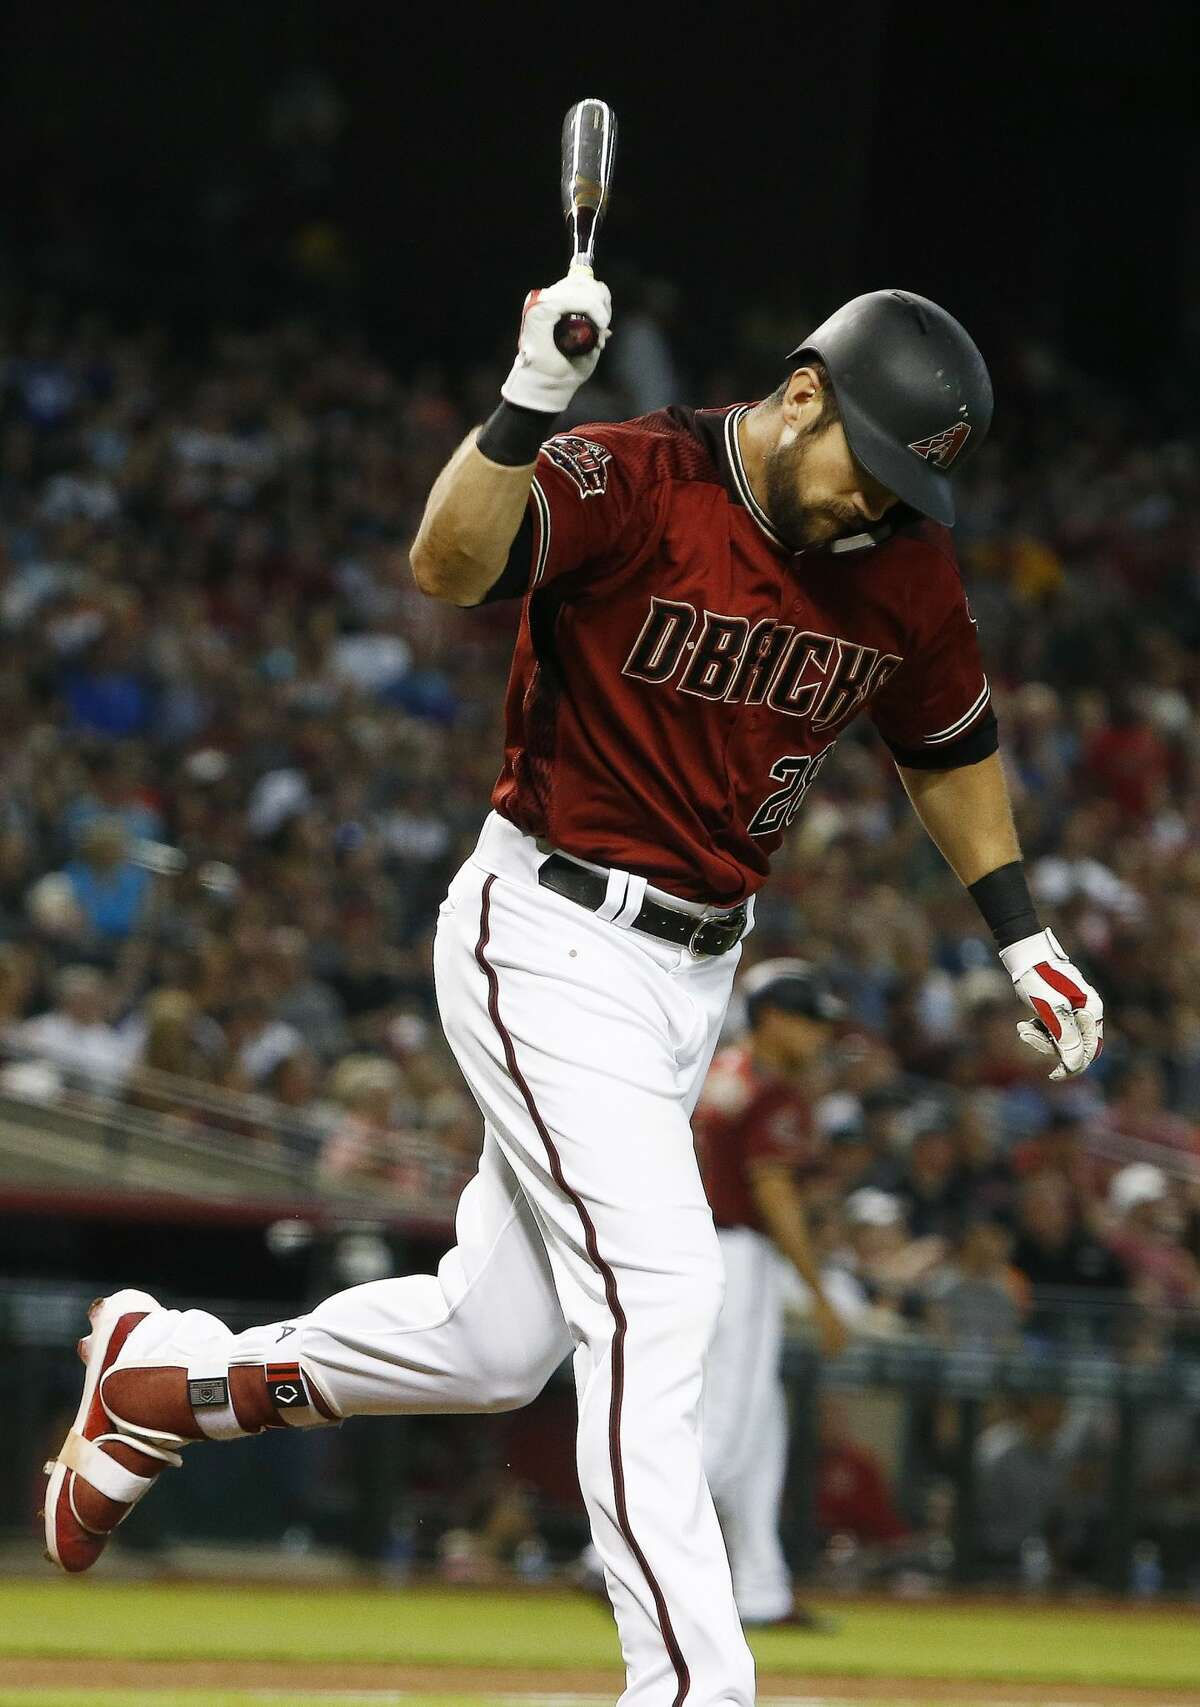 Arizona Diamondbacks' Steven Souza Jr. throws down his bat s he hits a pop fly-out against the Houston Astros during the fourth inning of a baseball game Sunday, May 6, 2018, in Phoenix. (AP Photo/Ross D. Franklin)